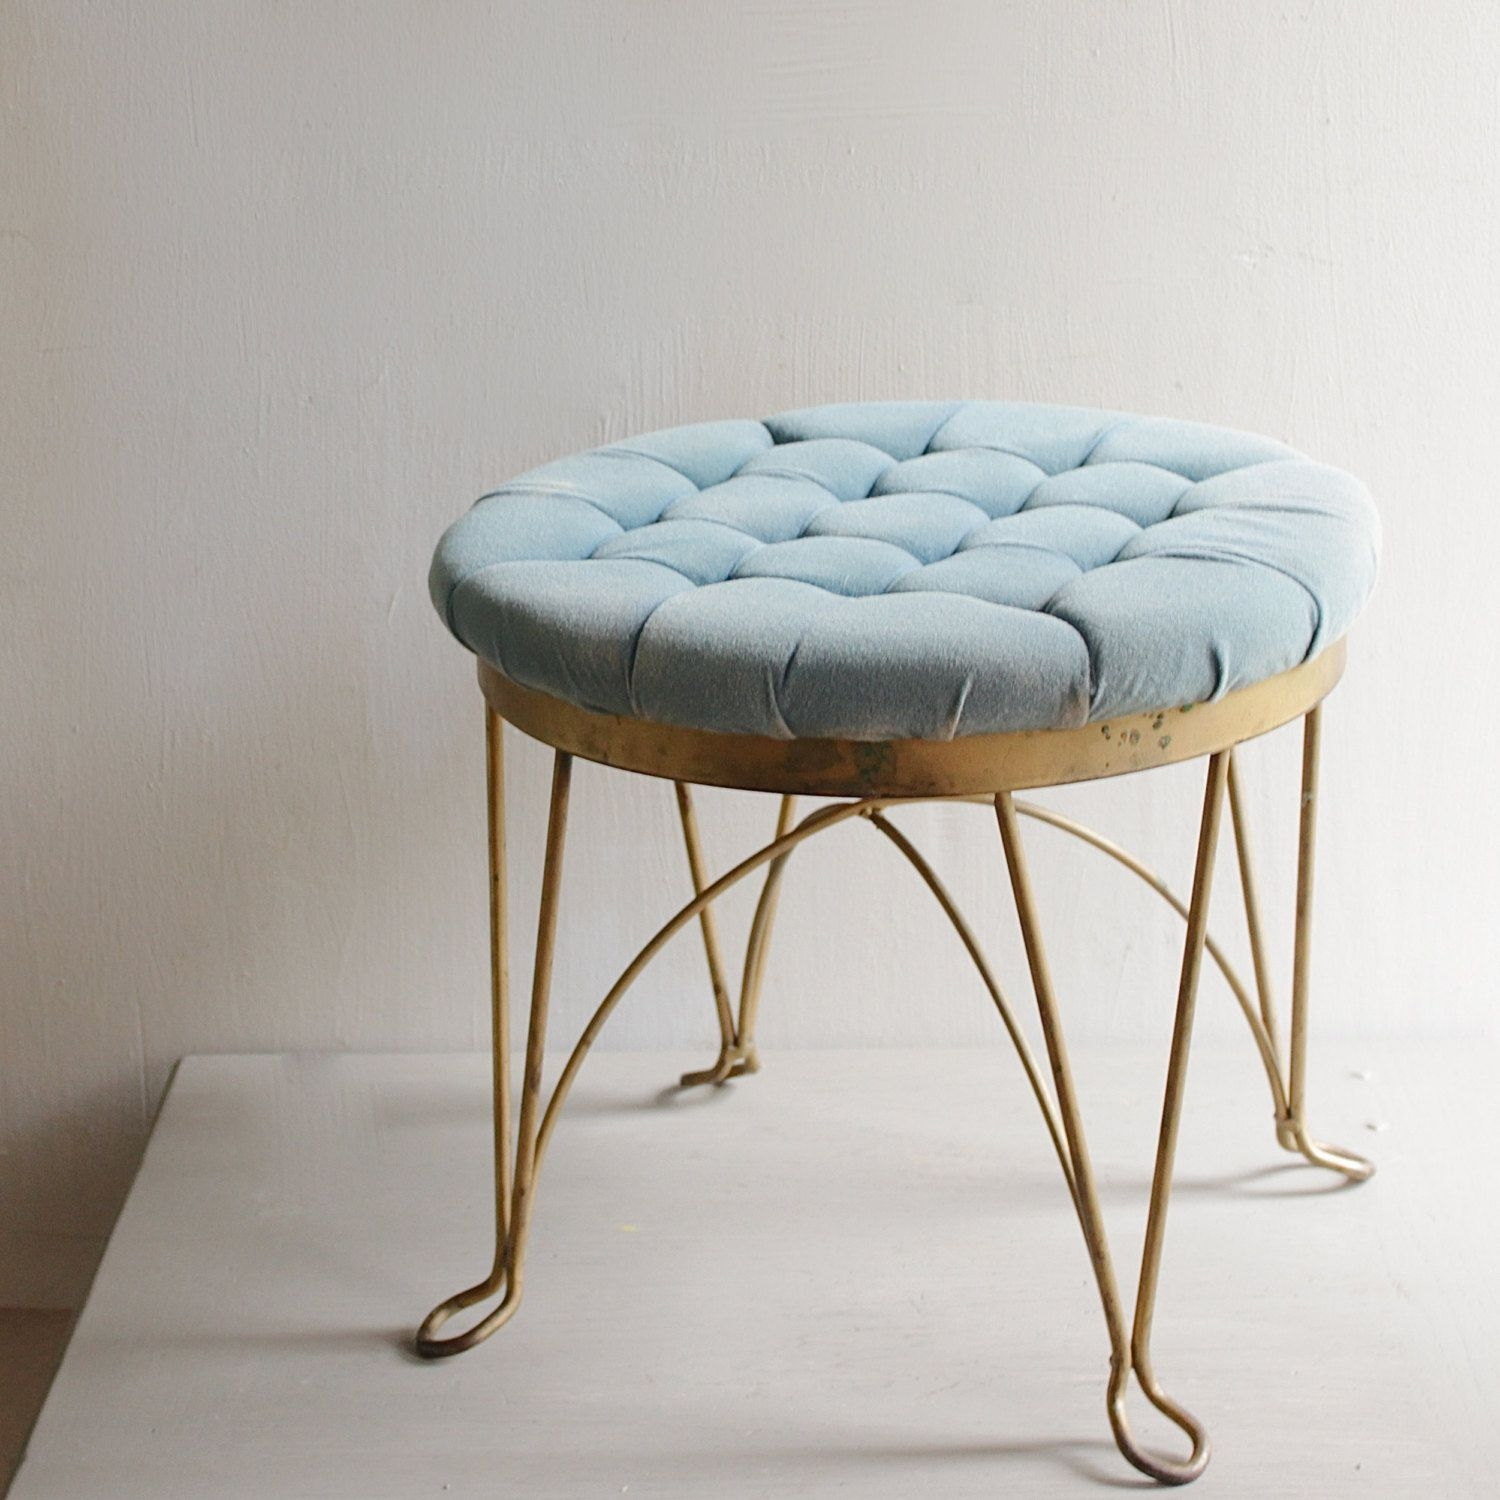 Vintage tufted stool